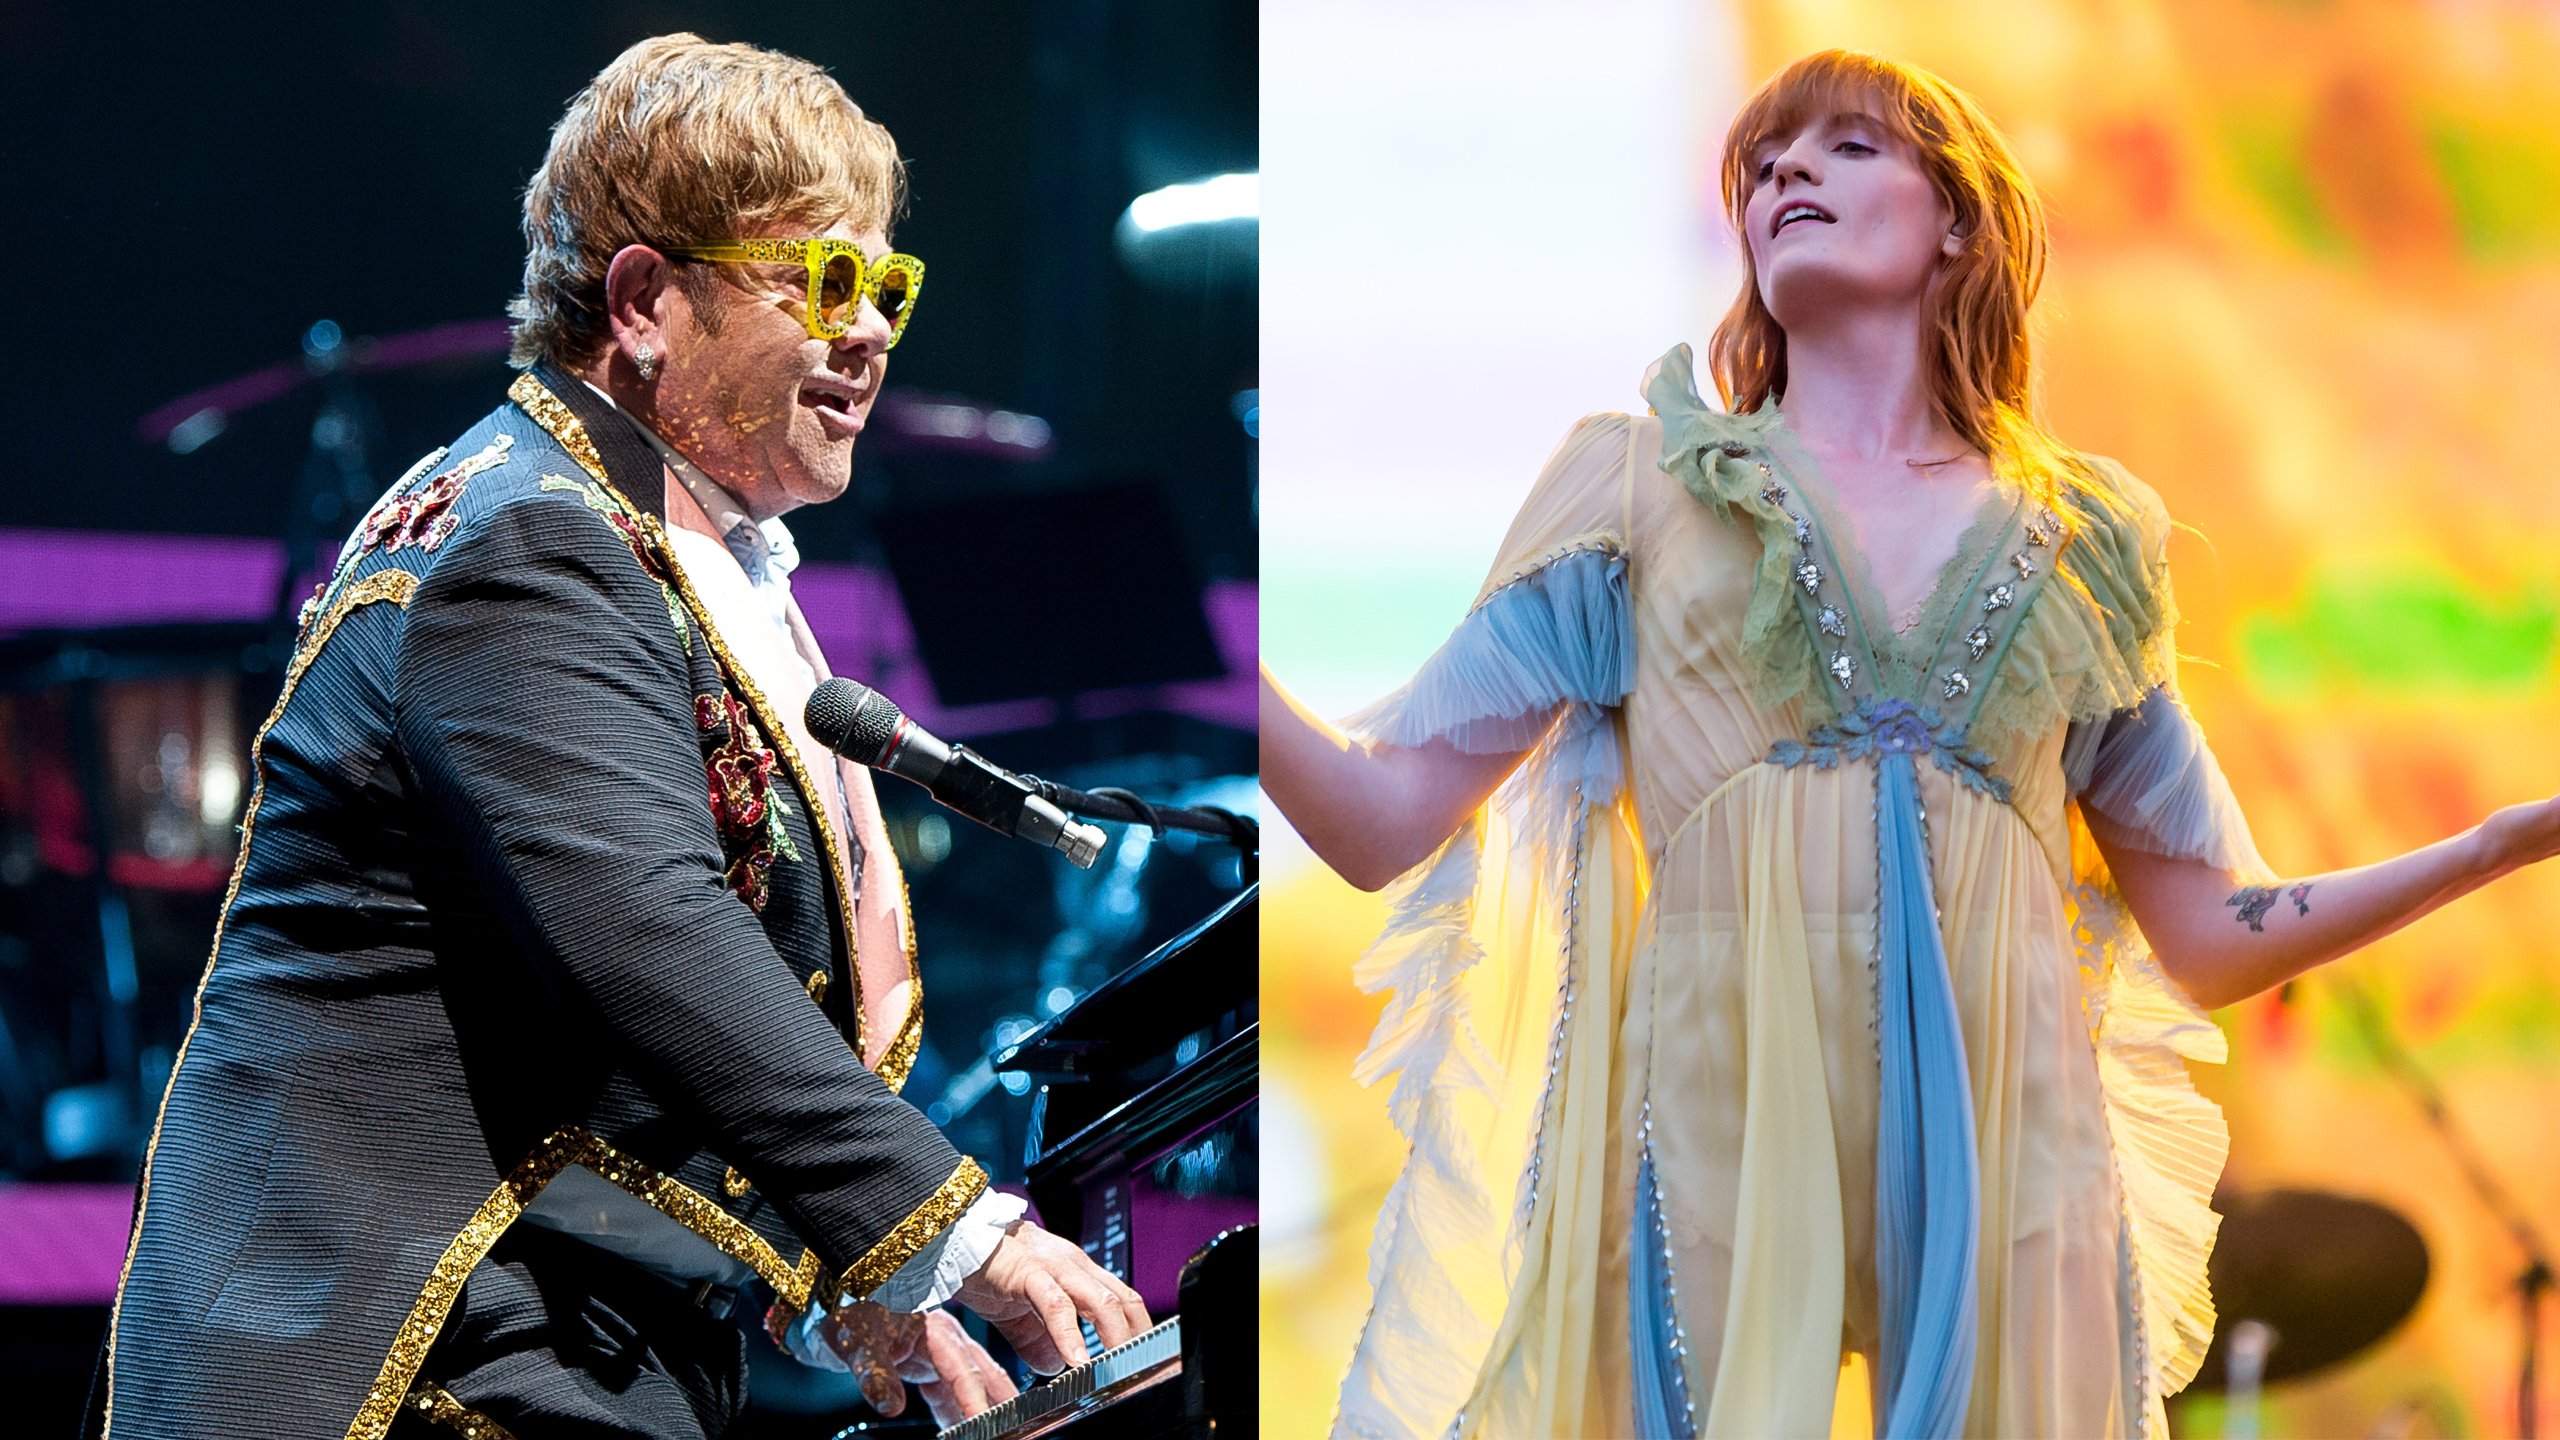 Elton John in concert; Florence and the Machine in concert ©Shutterstock